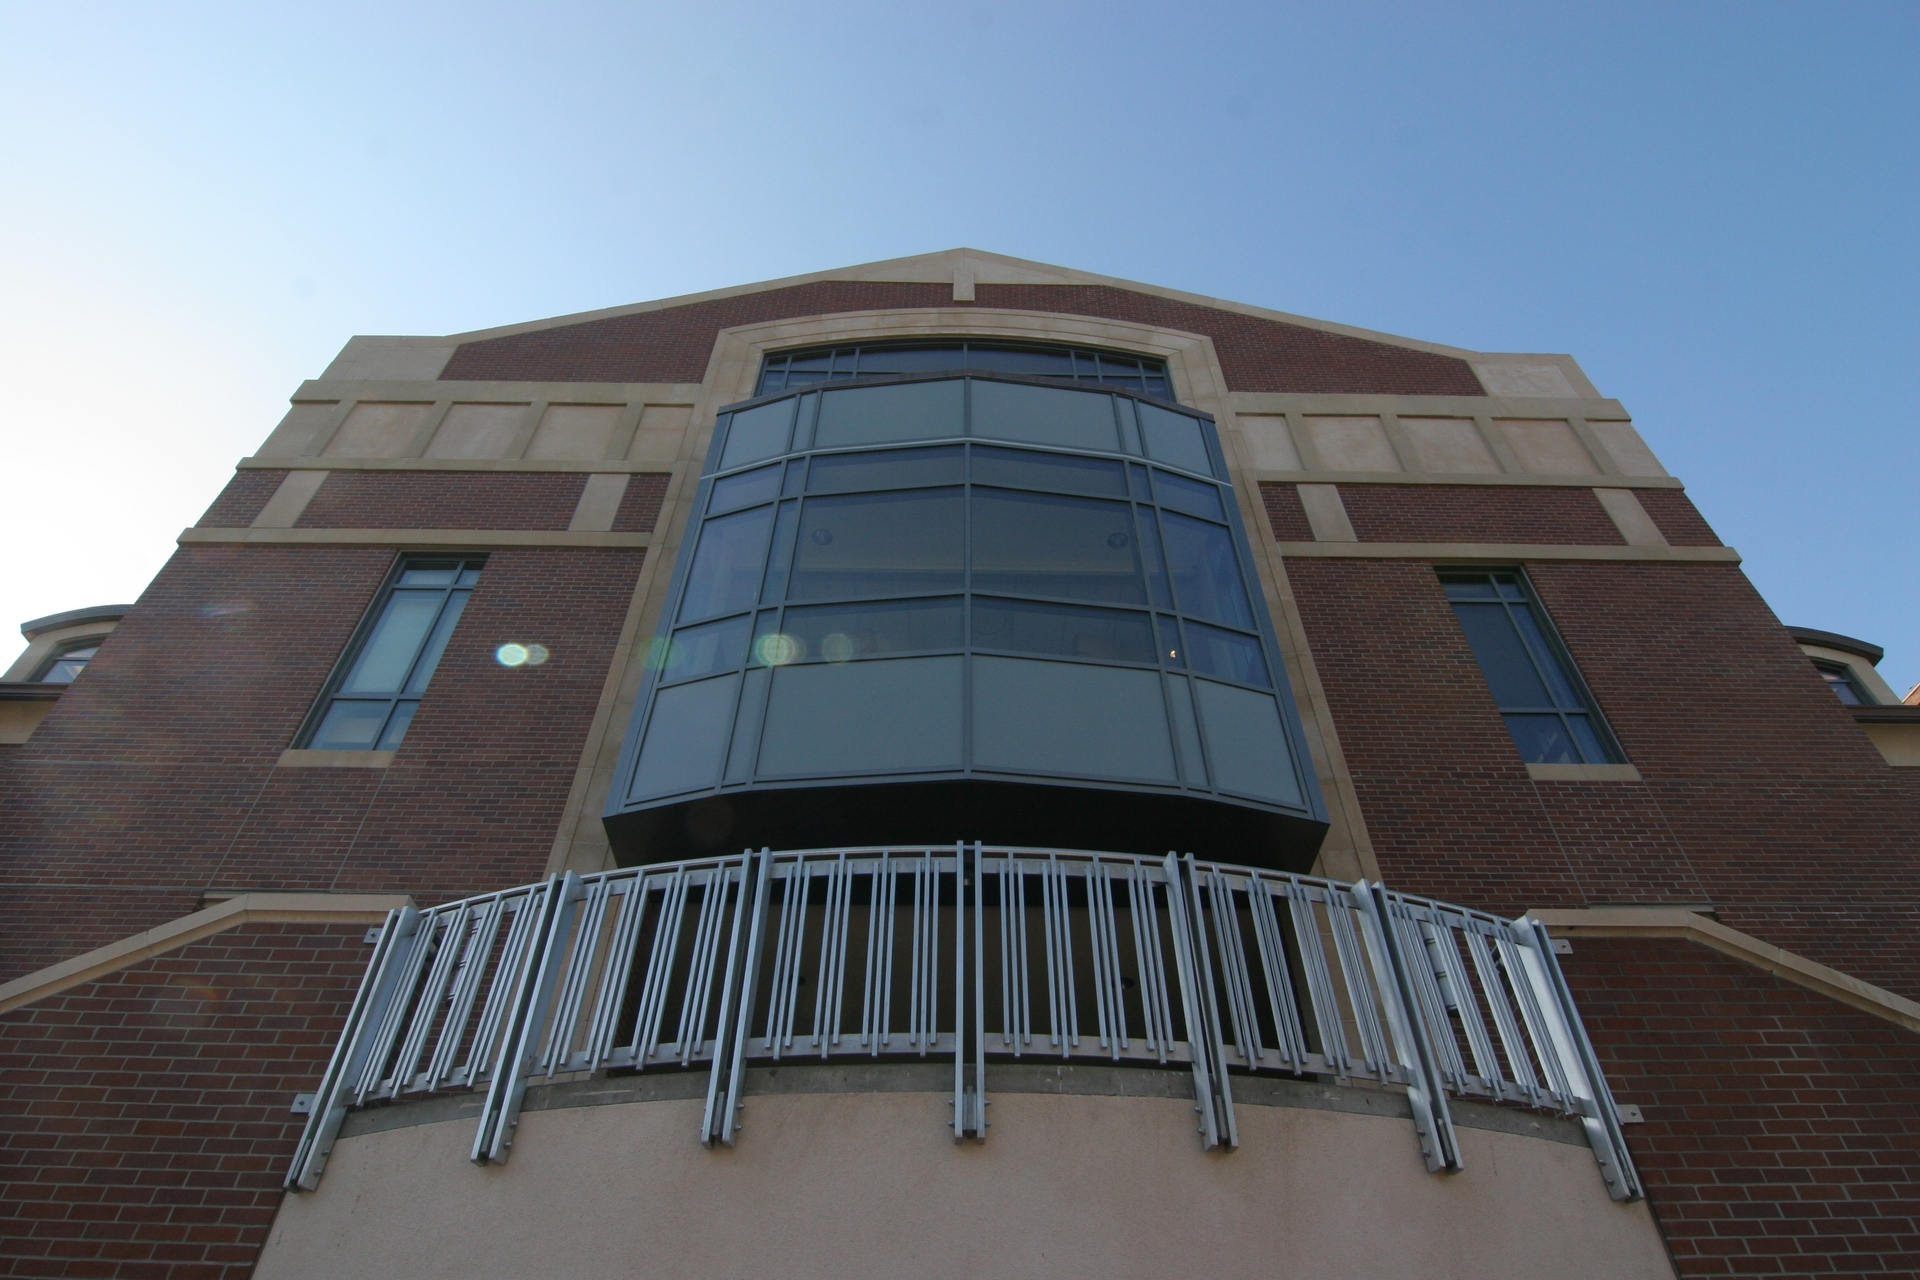 Facade view to showcase the GFRC trims, parapet caps, dormers, and wall caps by GC Products.